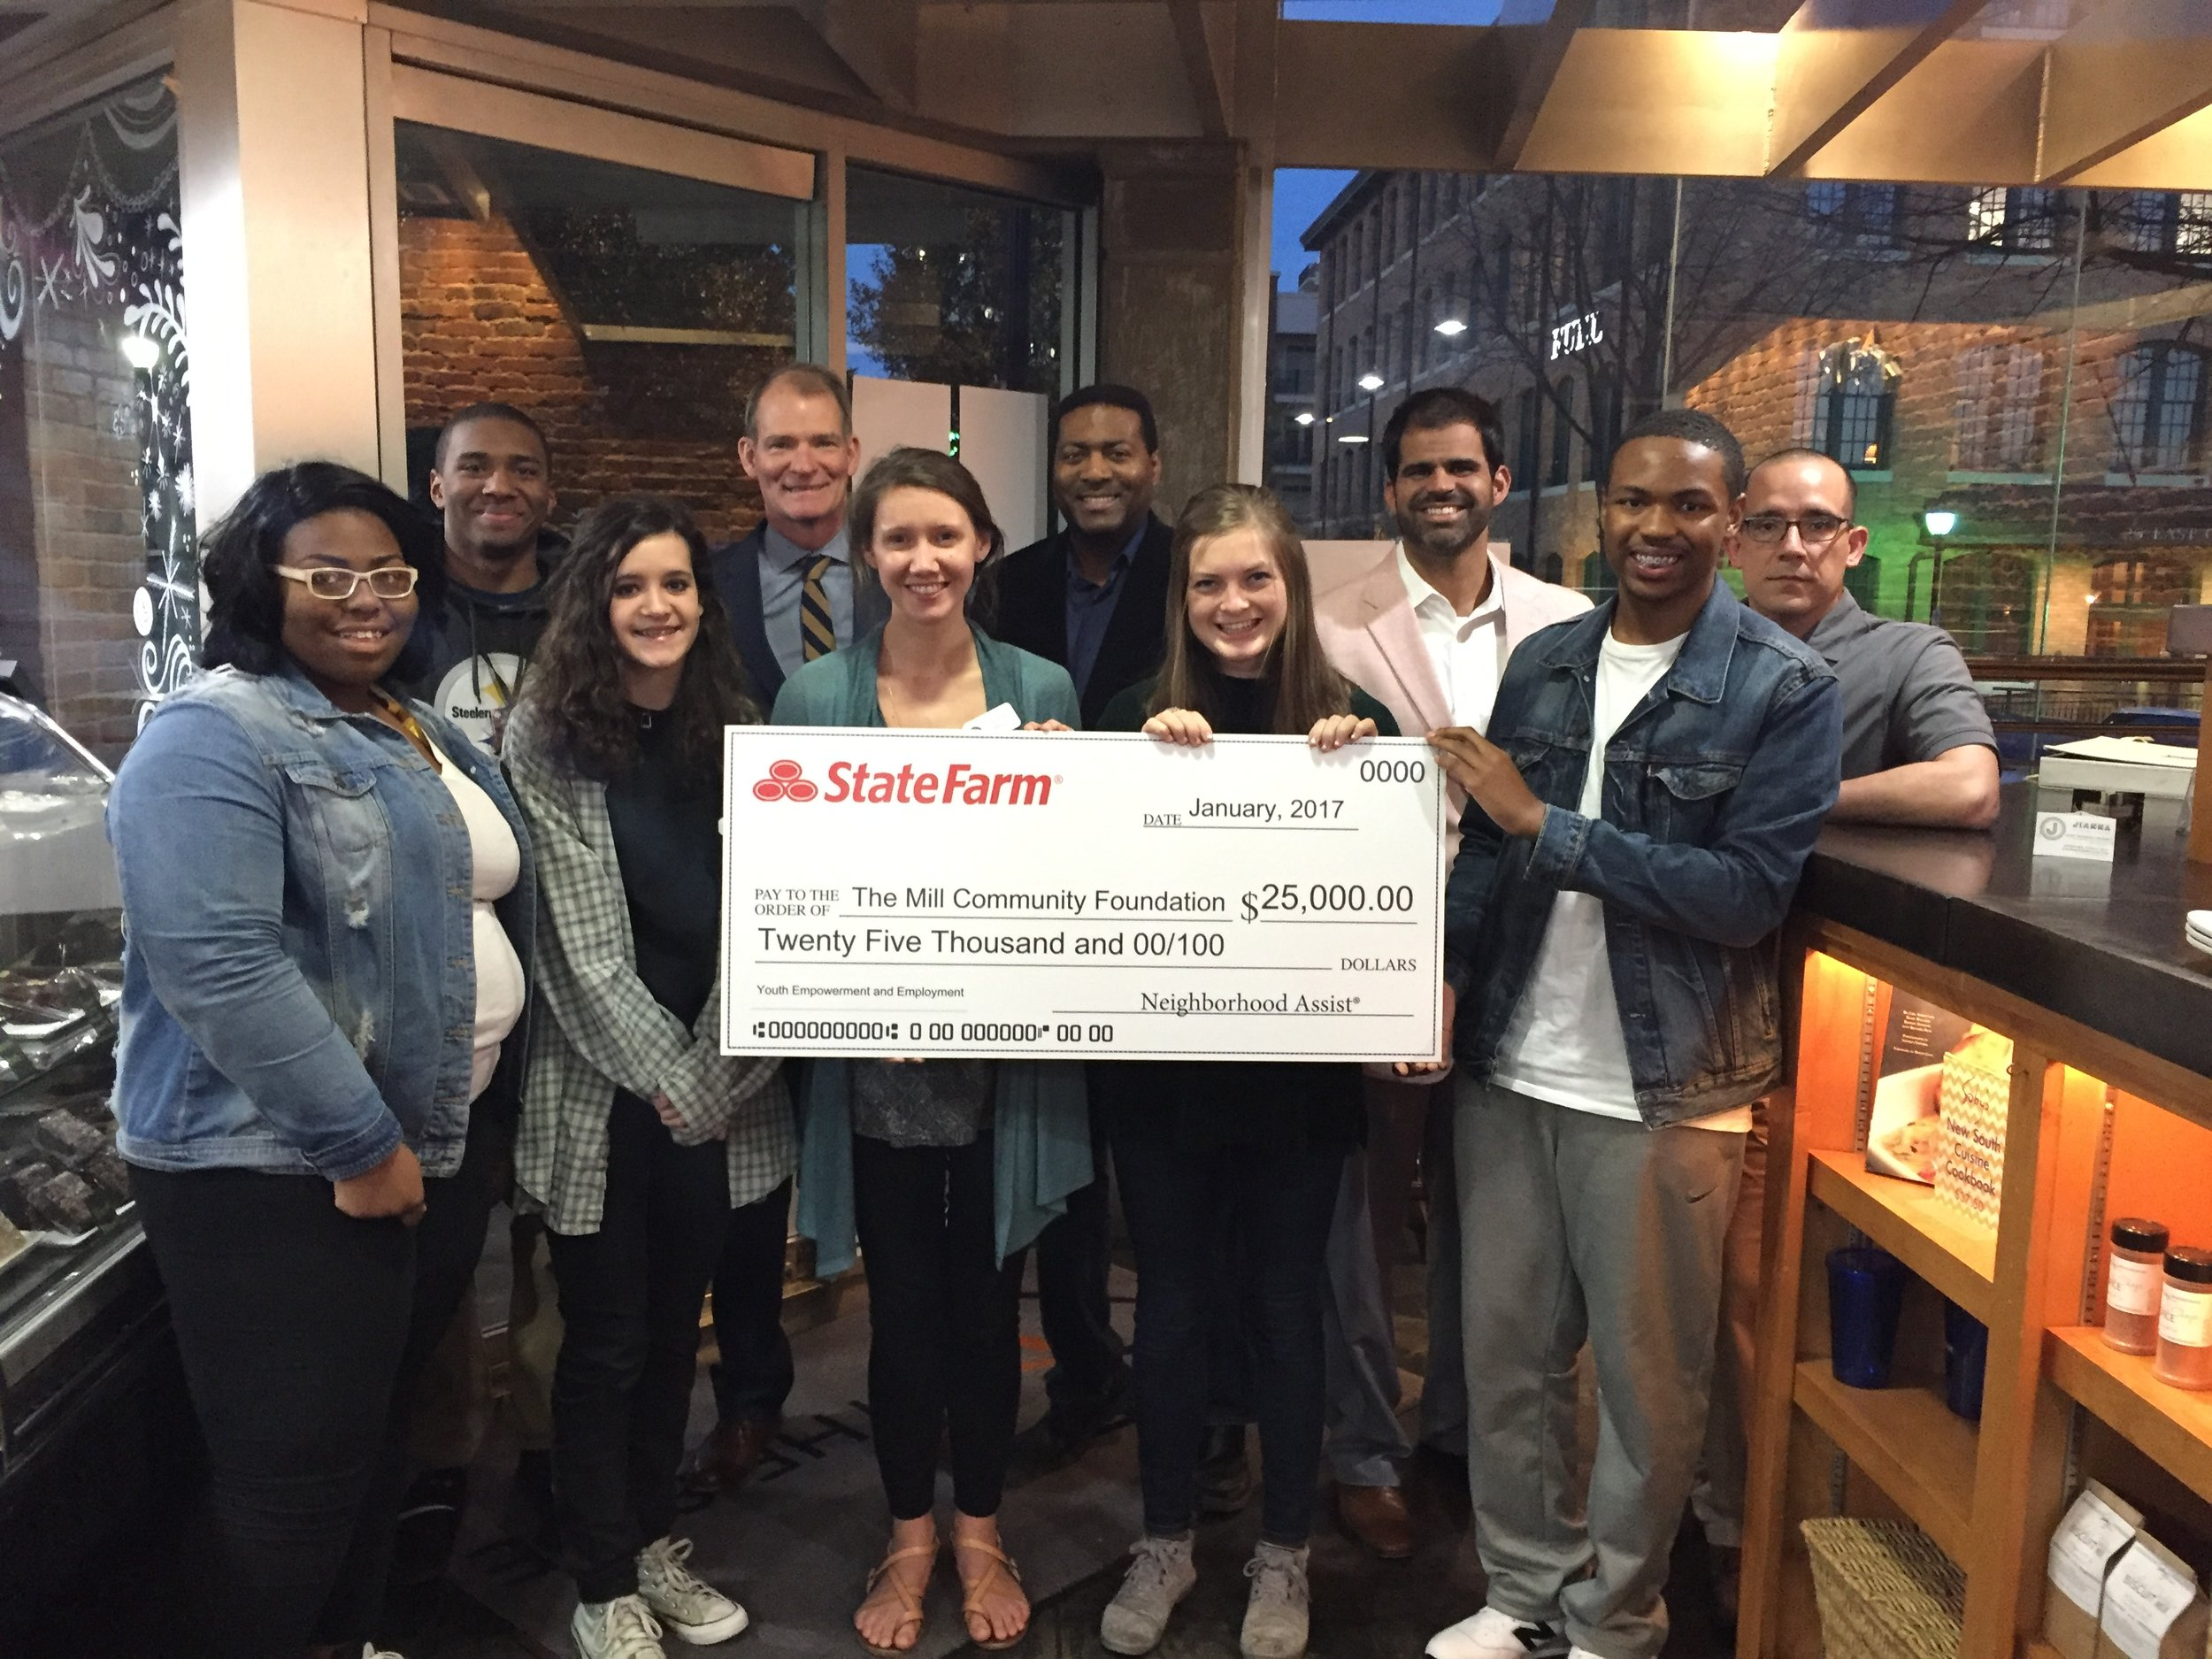 State Farm check presentation at our Youth Job Training Program at Table 301's Soby's on the Side.